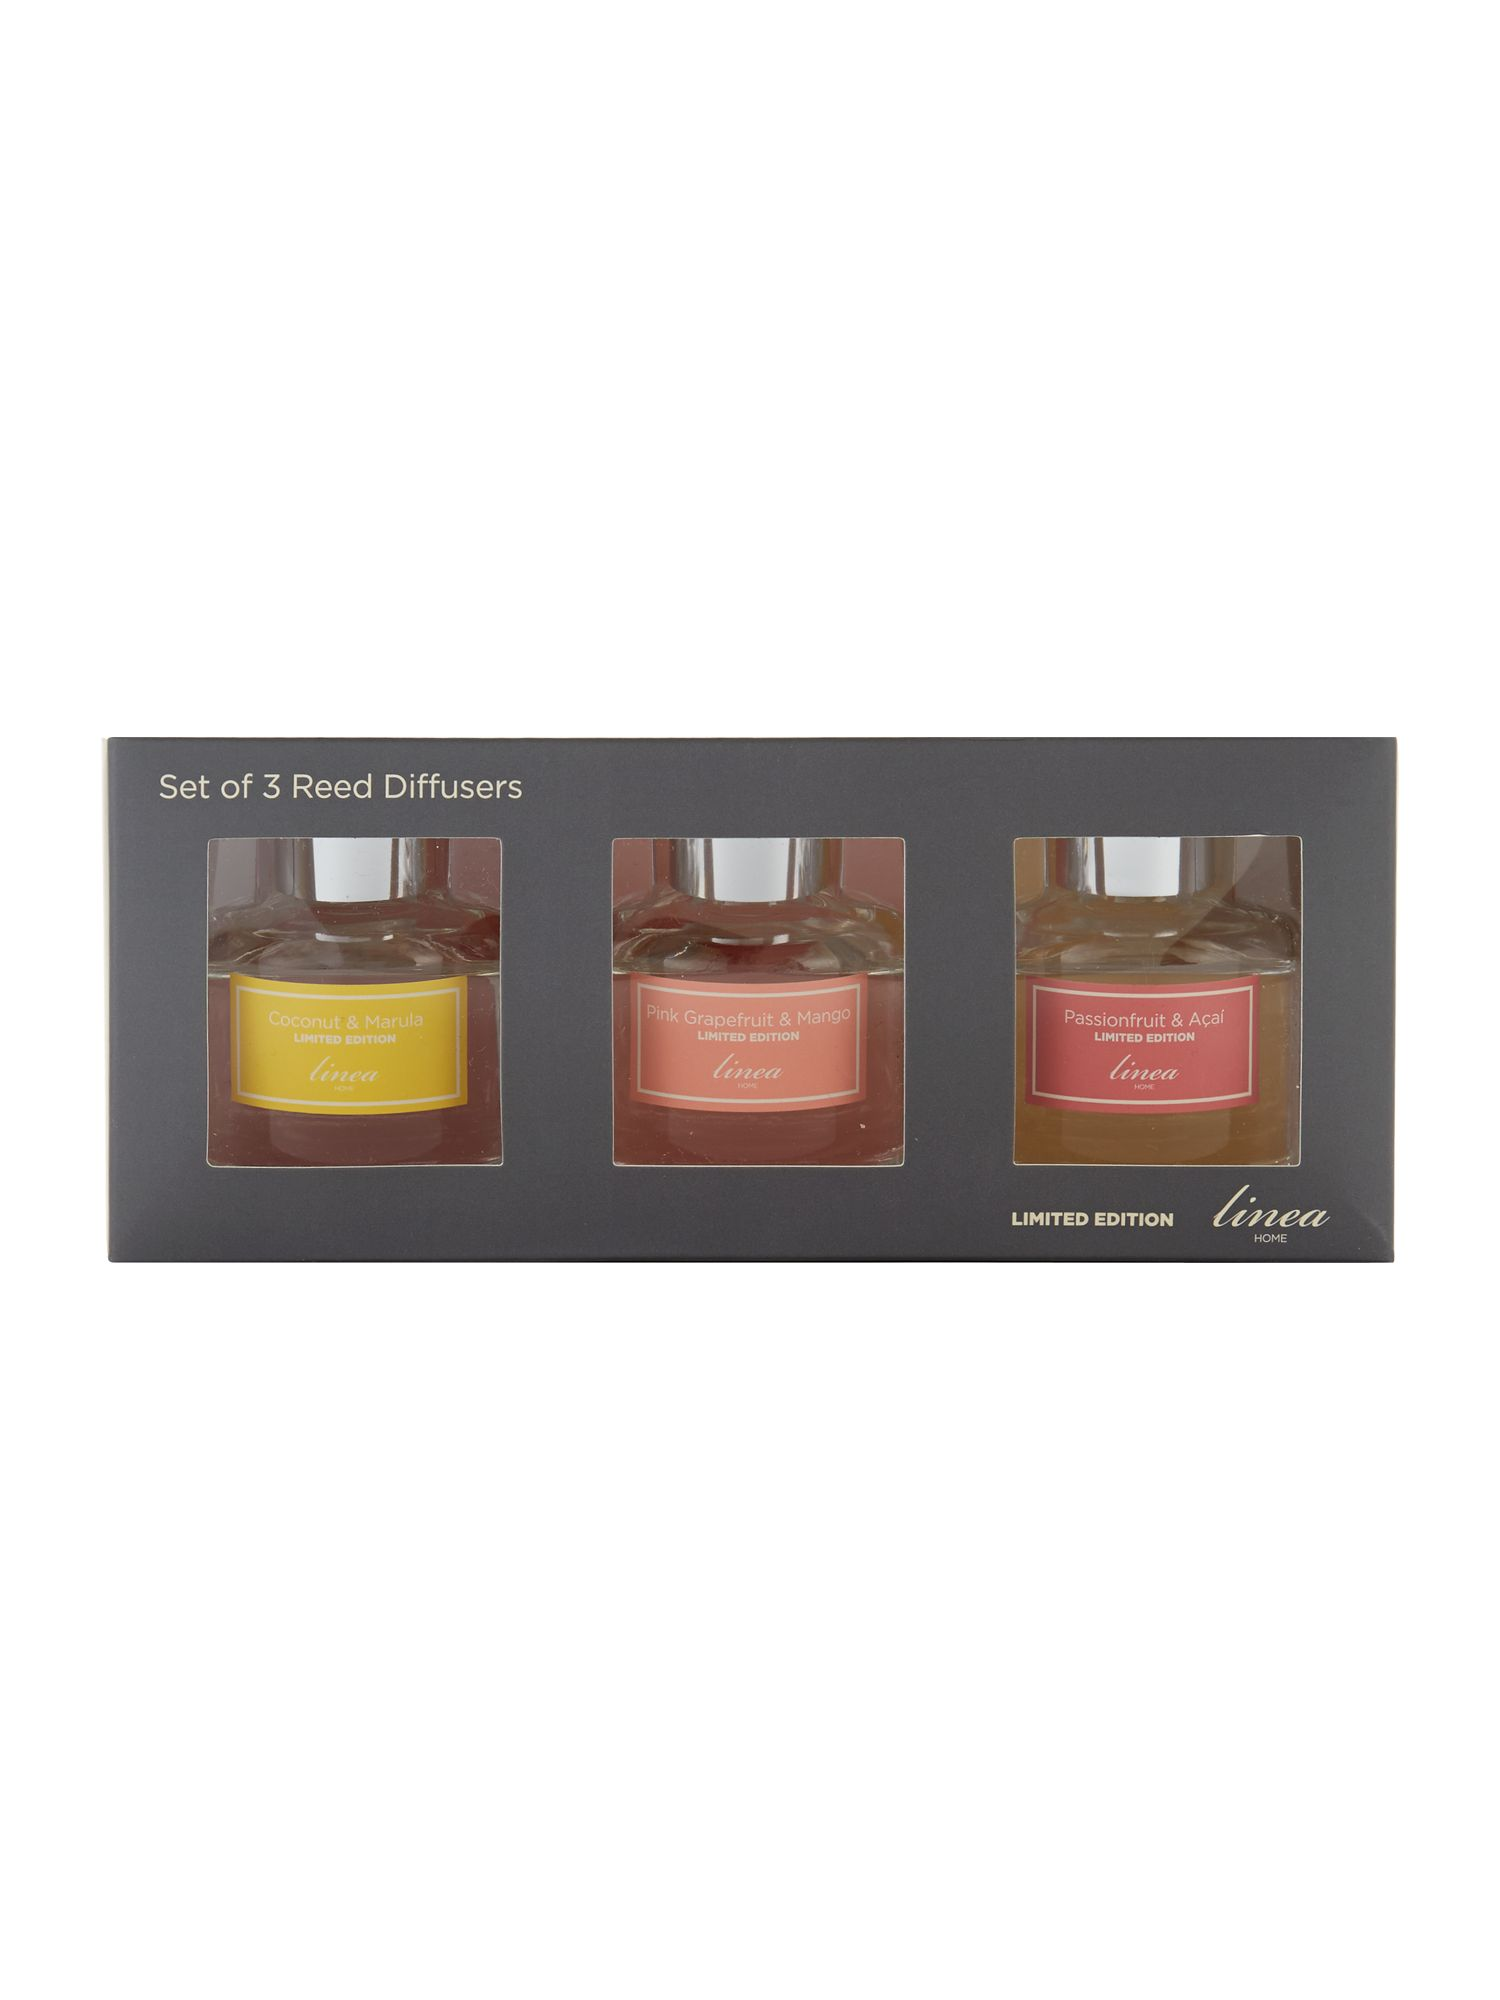 Limited edition set of 3 mini diffusers